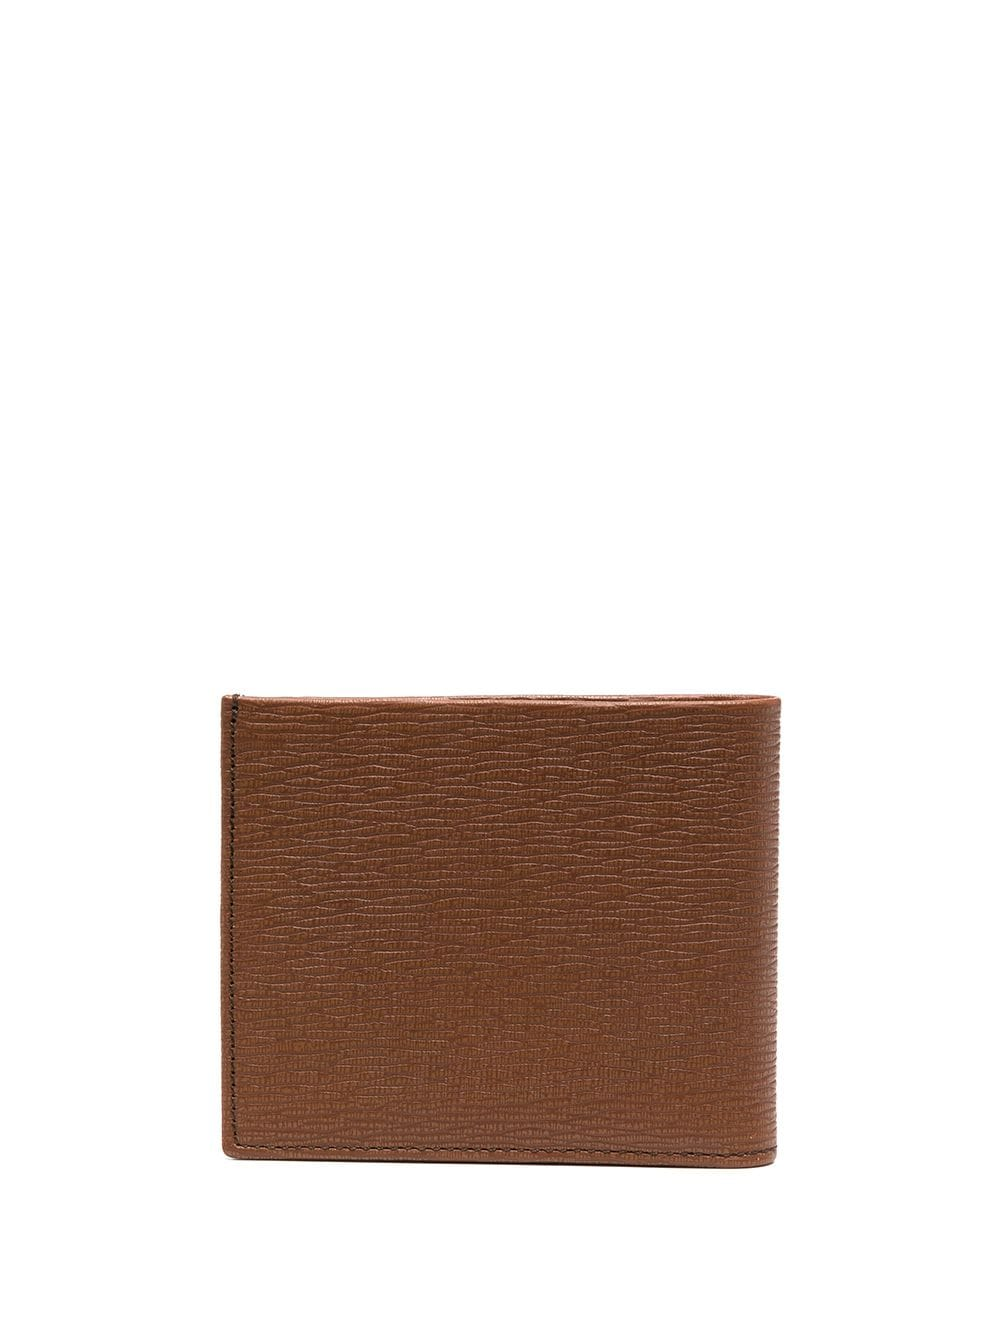 SALVATORE FERRAGAMO Grained Gancini Logo Wallet Brown